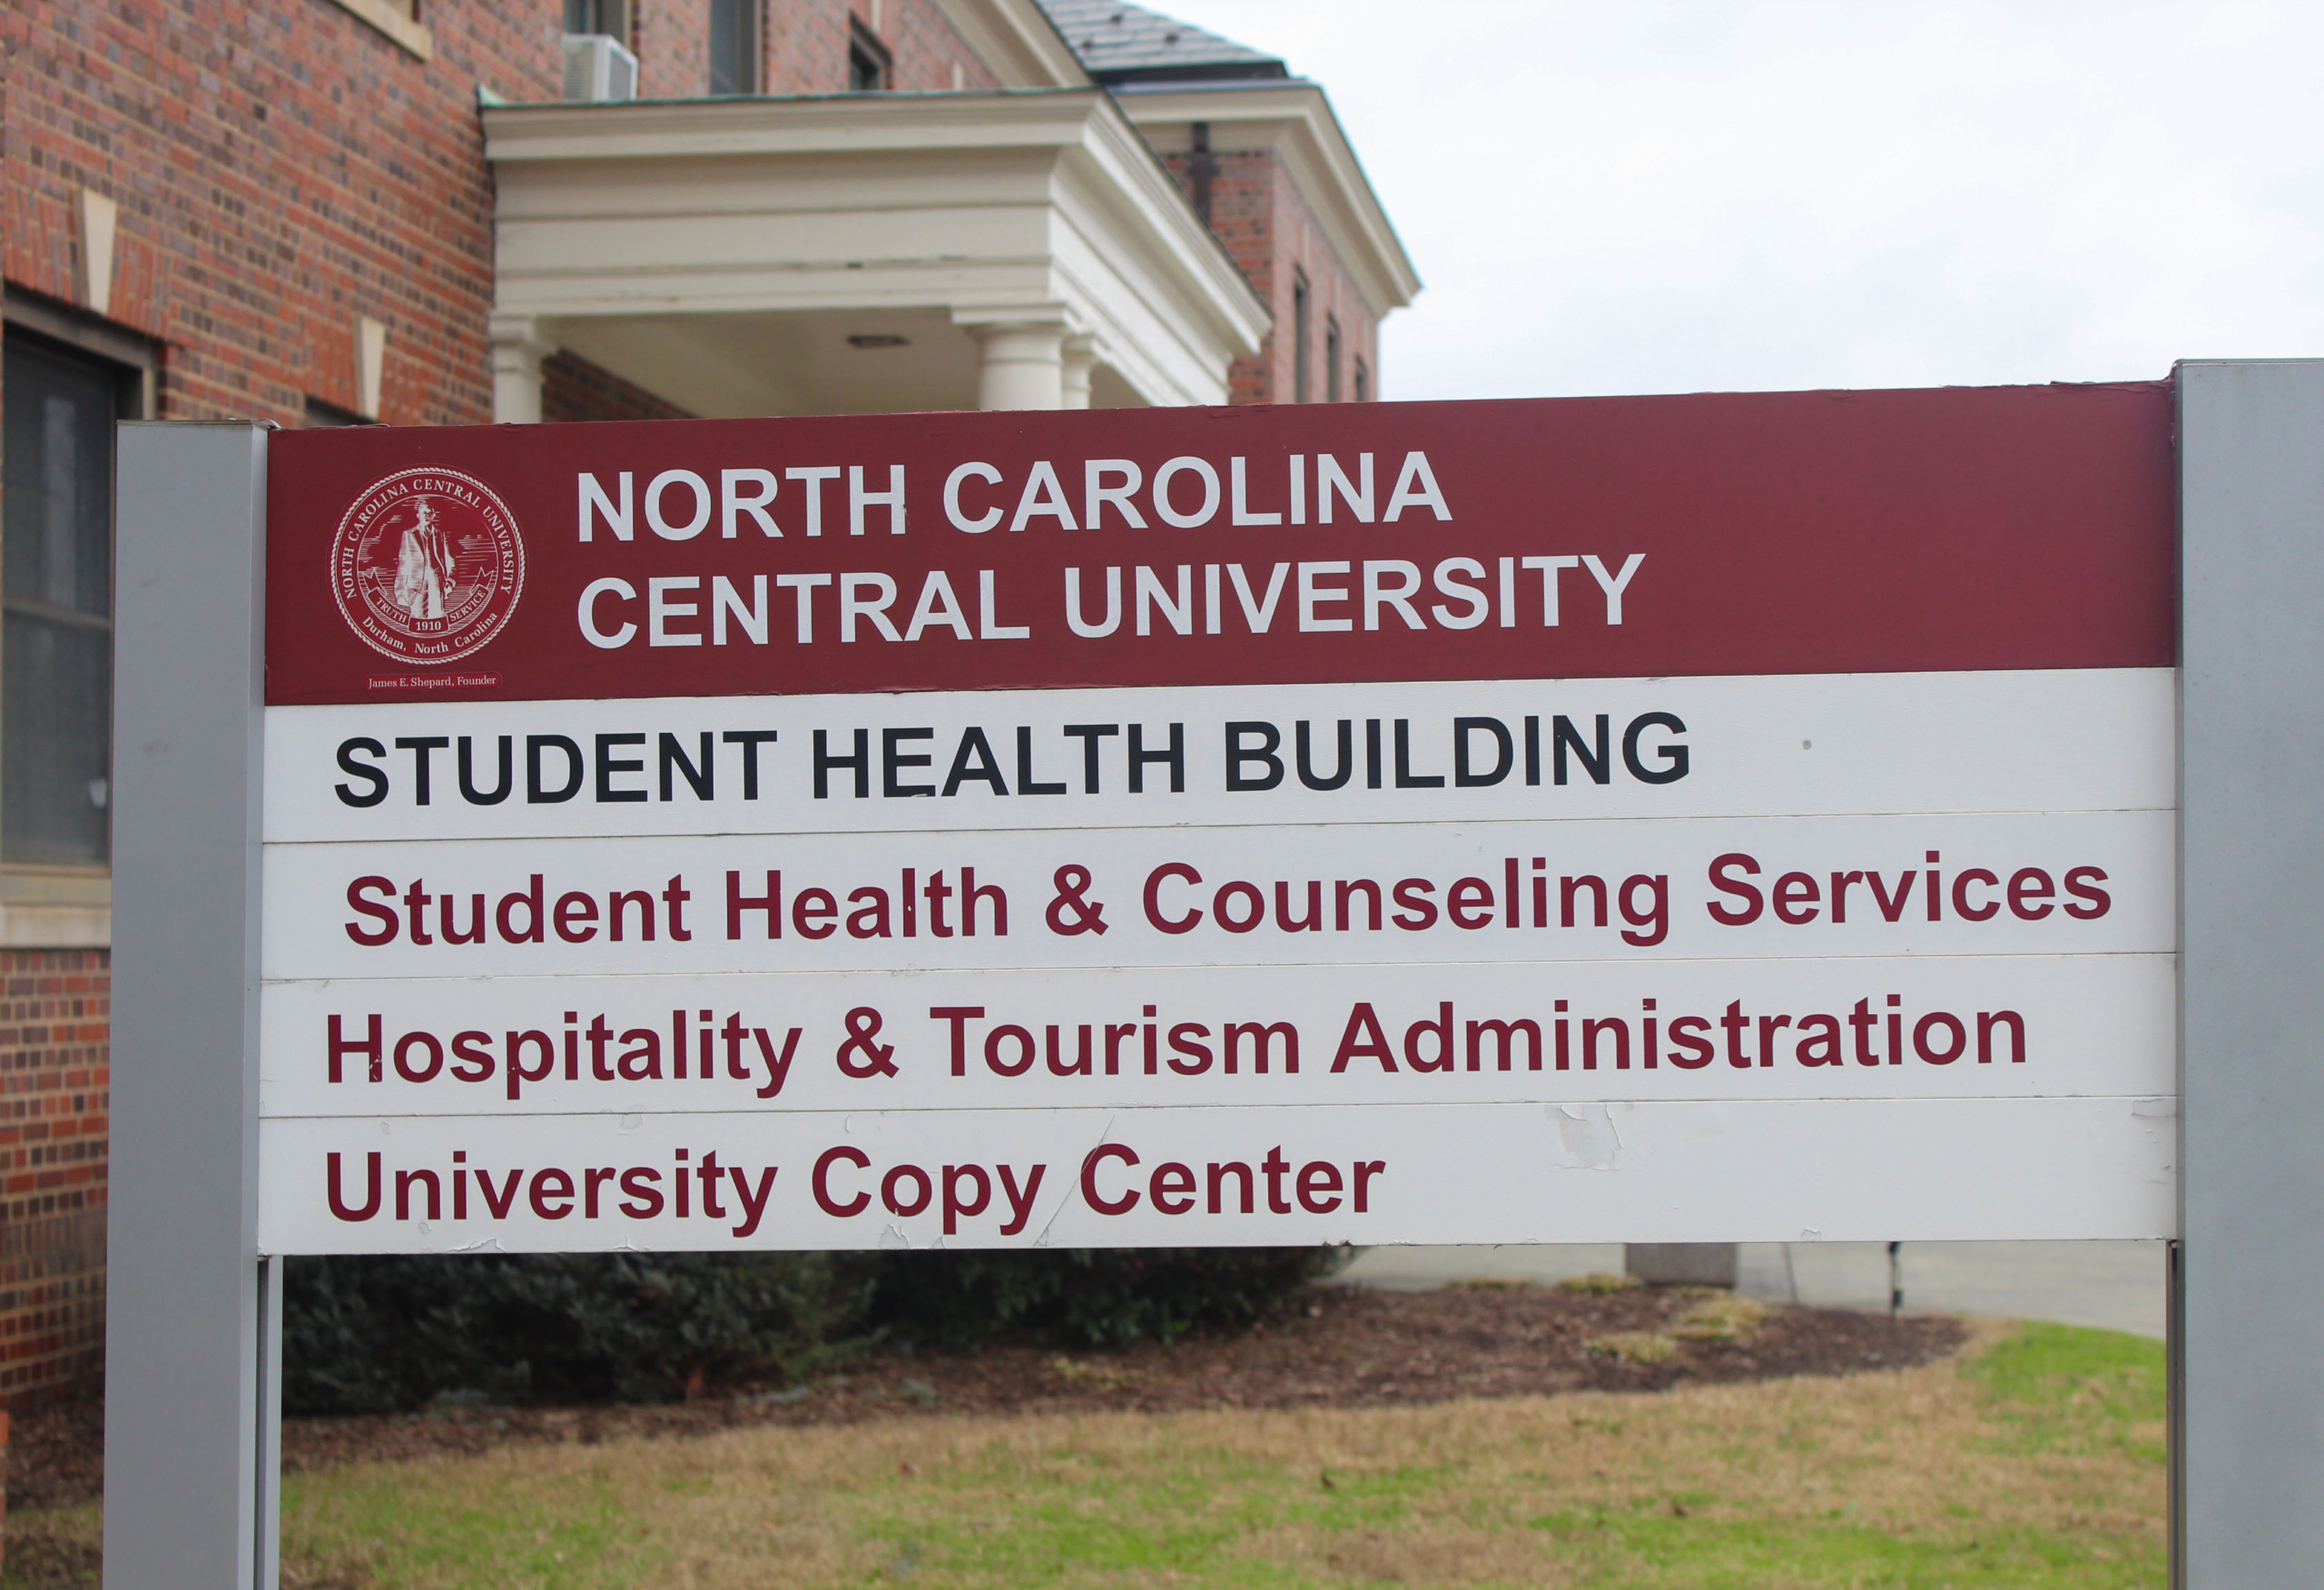 Student-Health-scaled.jpg?time=1582261415